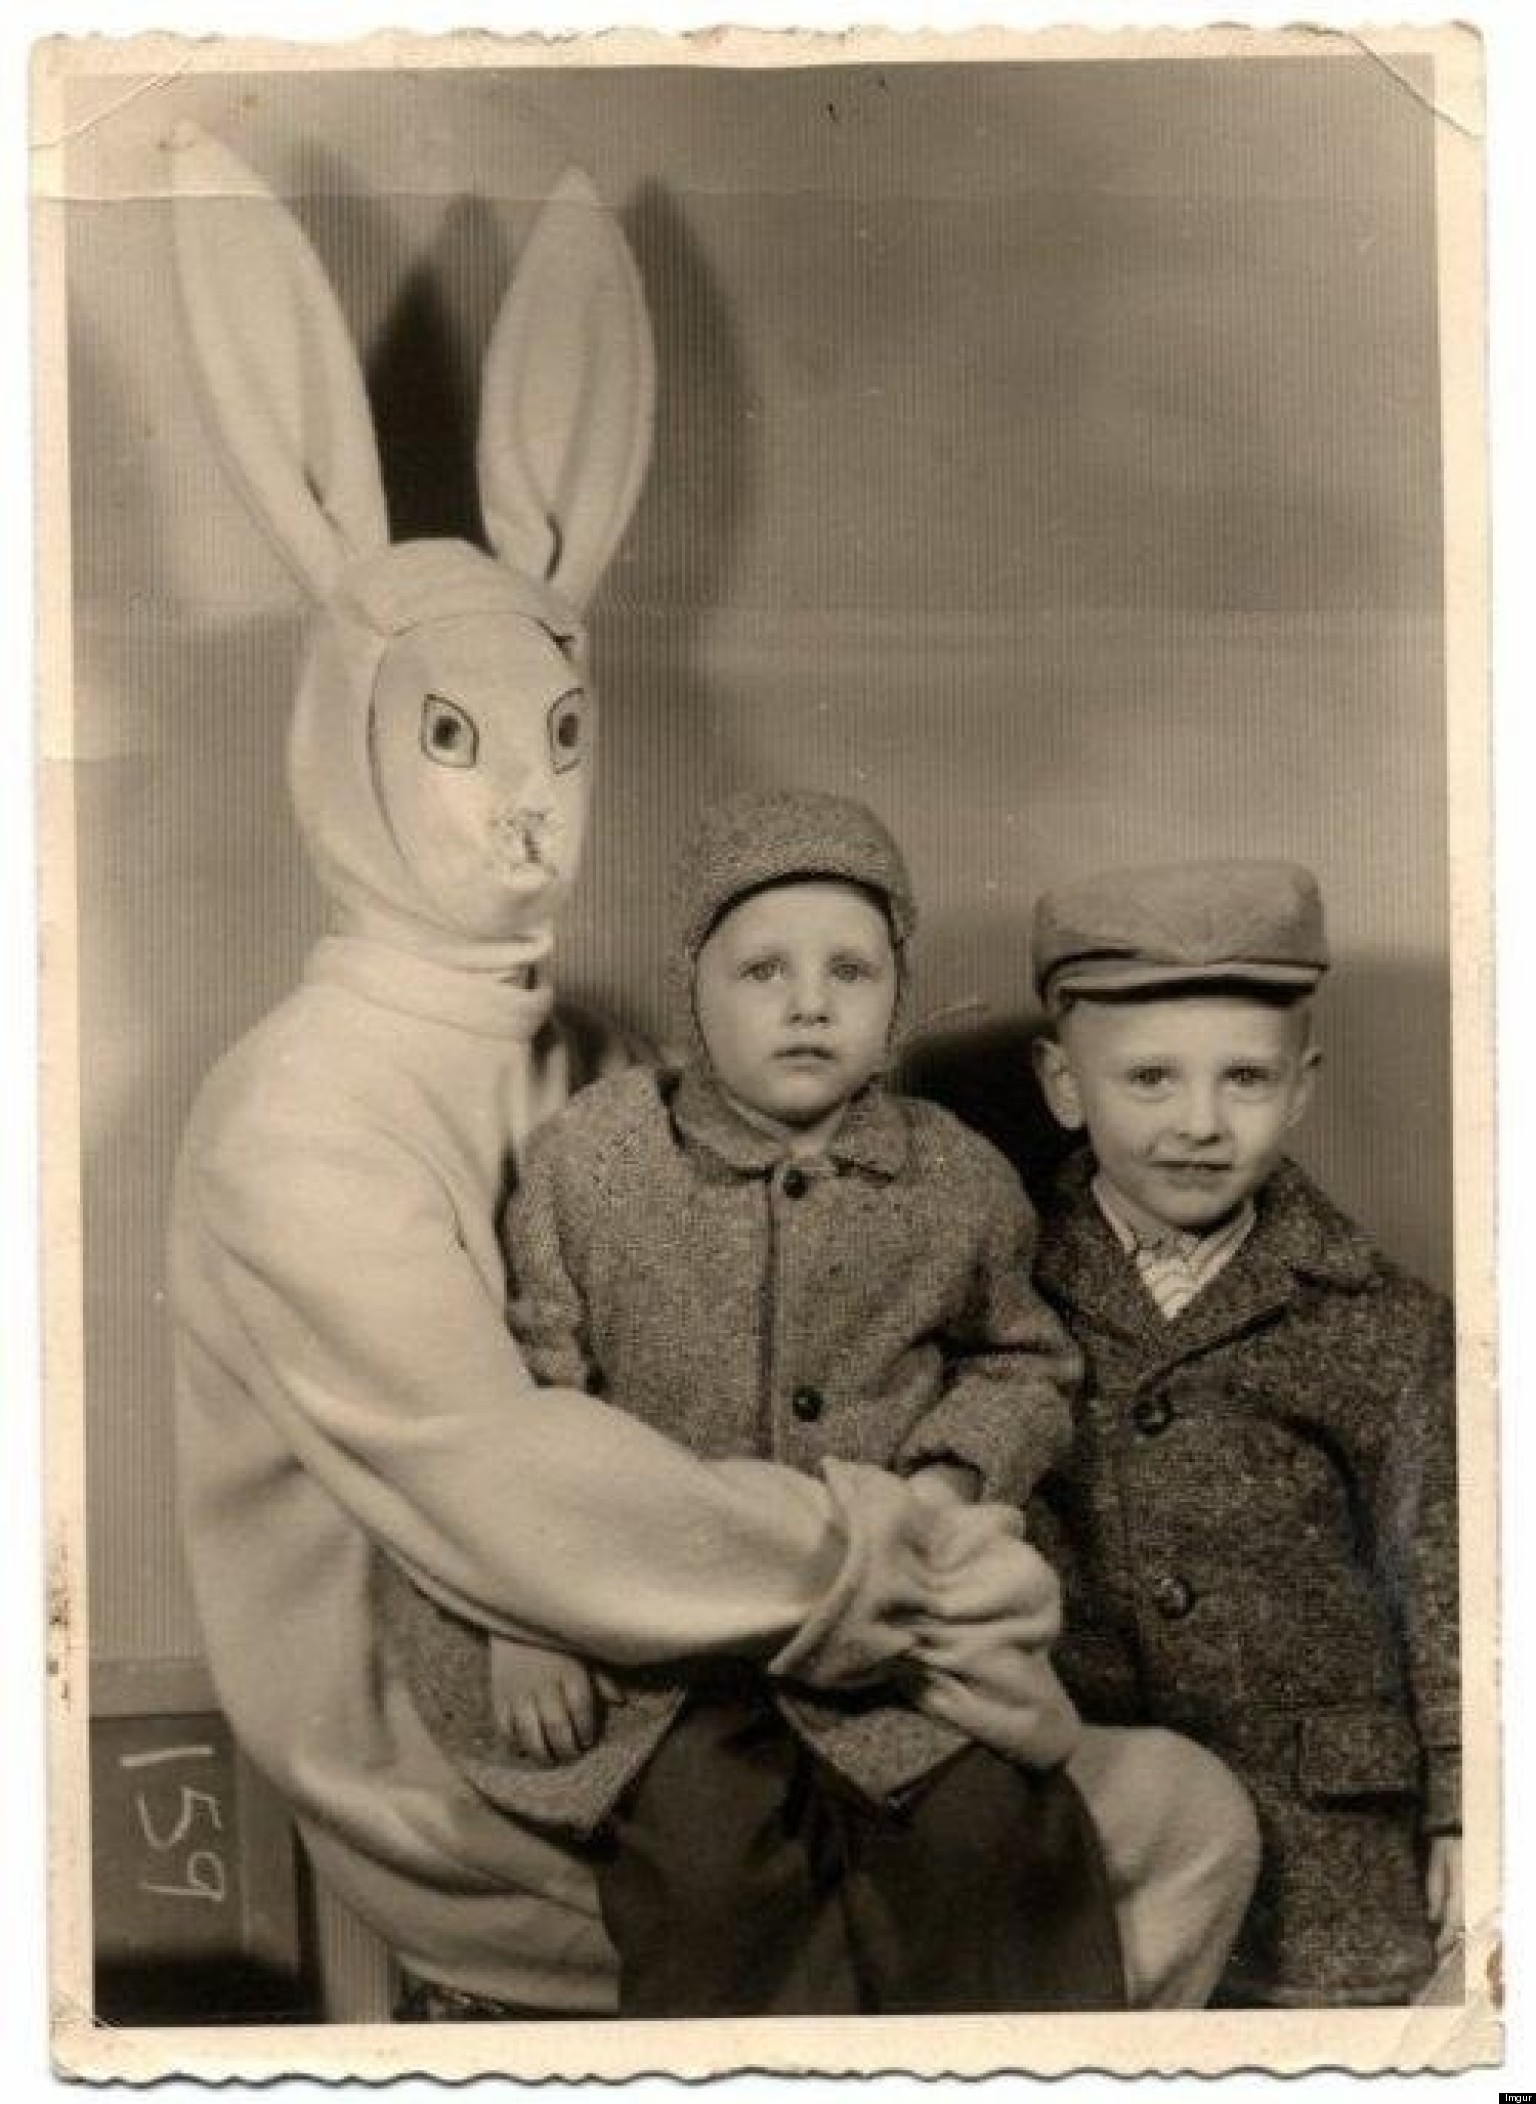 Creepy Vintage Easter Bunny Is The Stuff Of Nightmares PHOTO